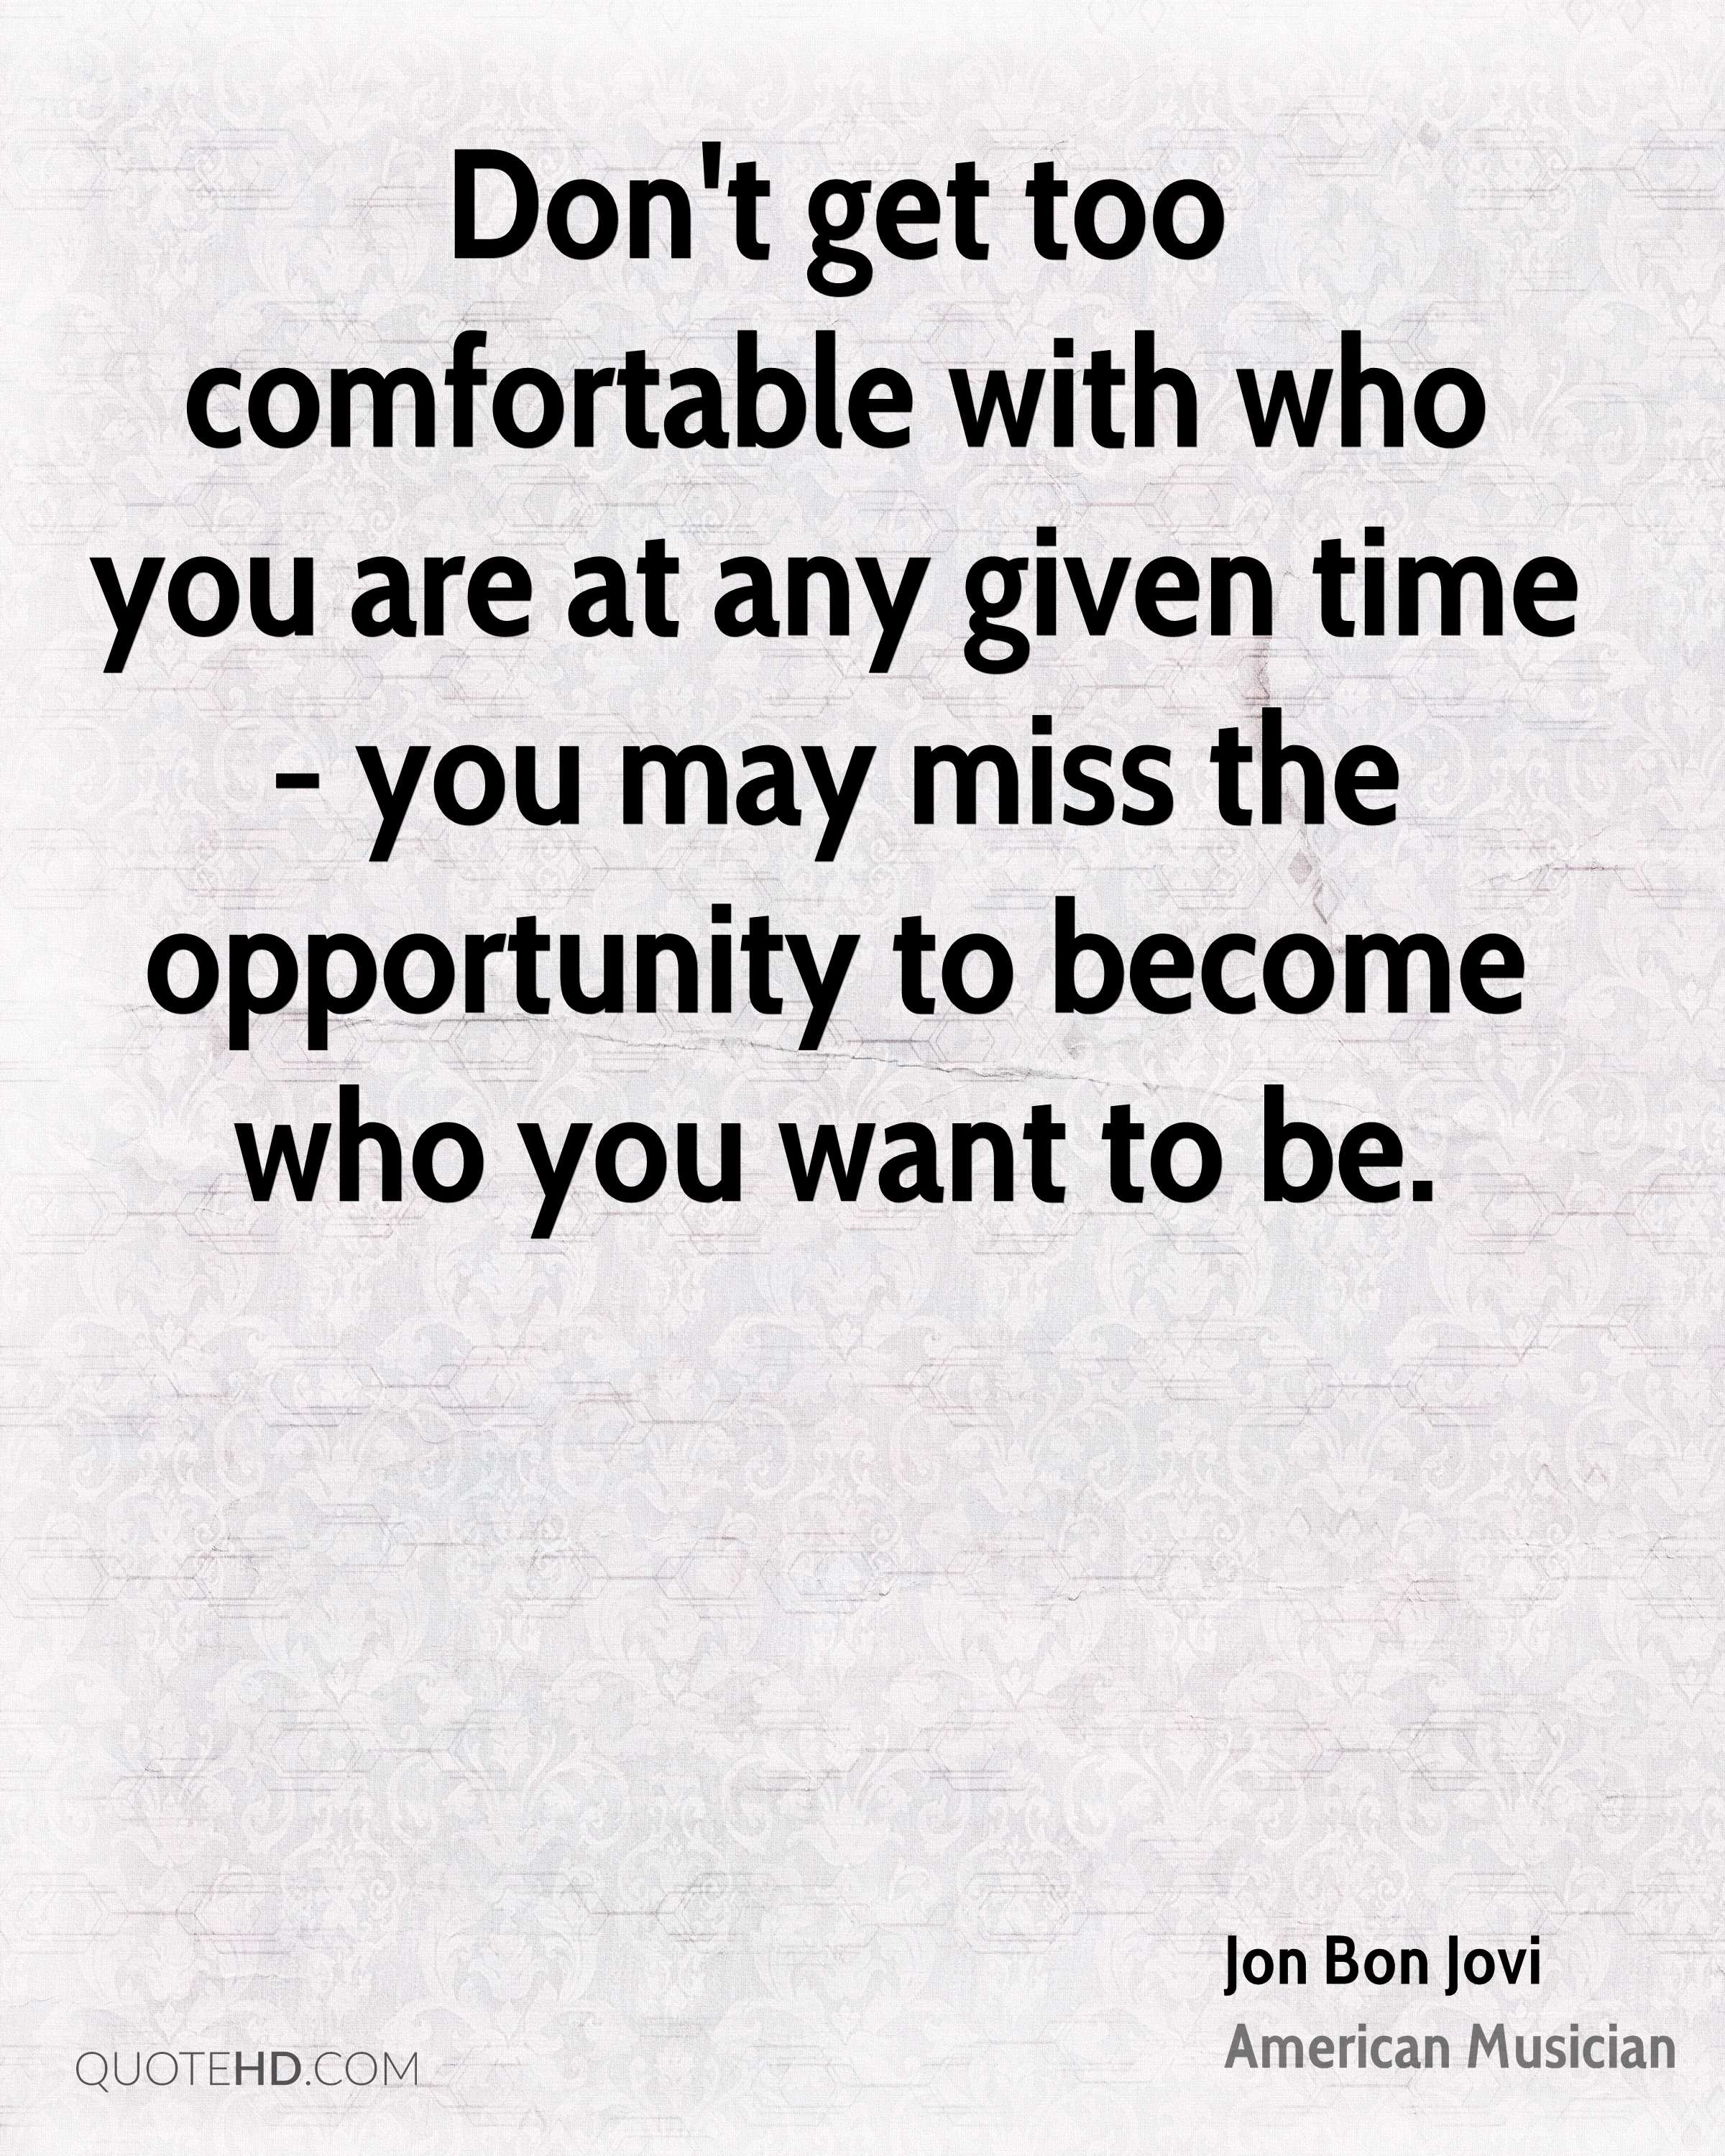 Don't get too comfortable with who you are at any given time - you may miss the opportunity to become who you want to be.